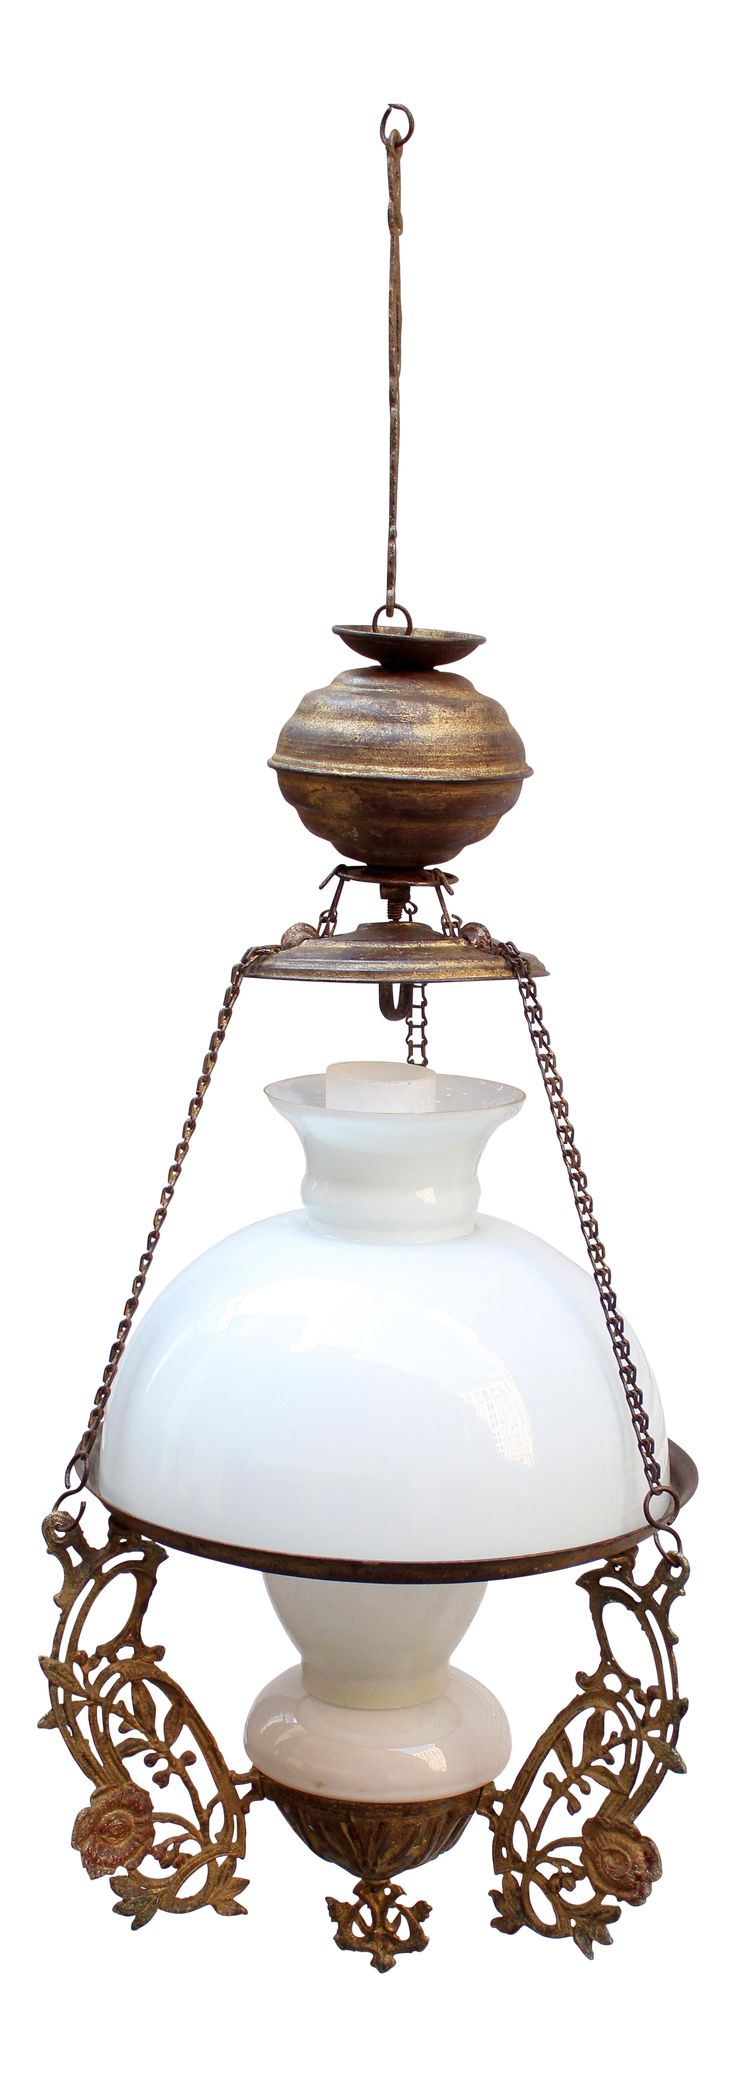 Italian Antique Lantern on Chairish.com